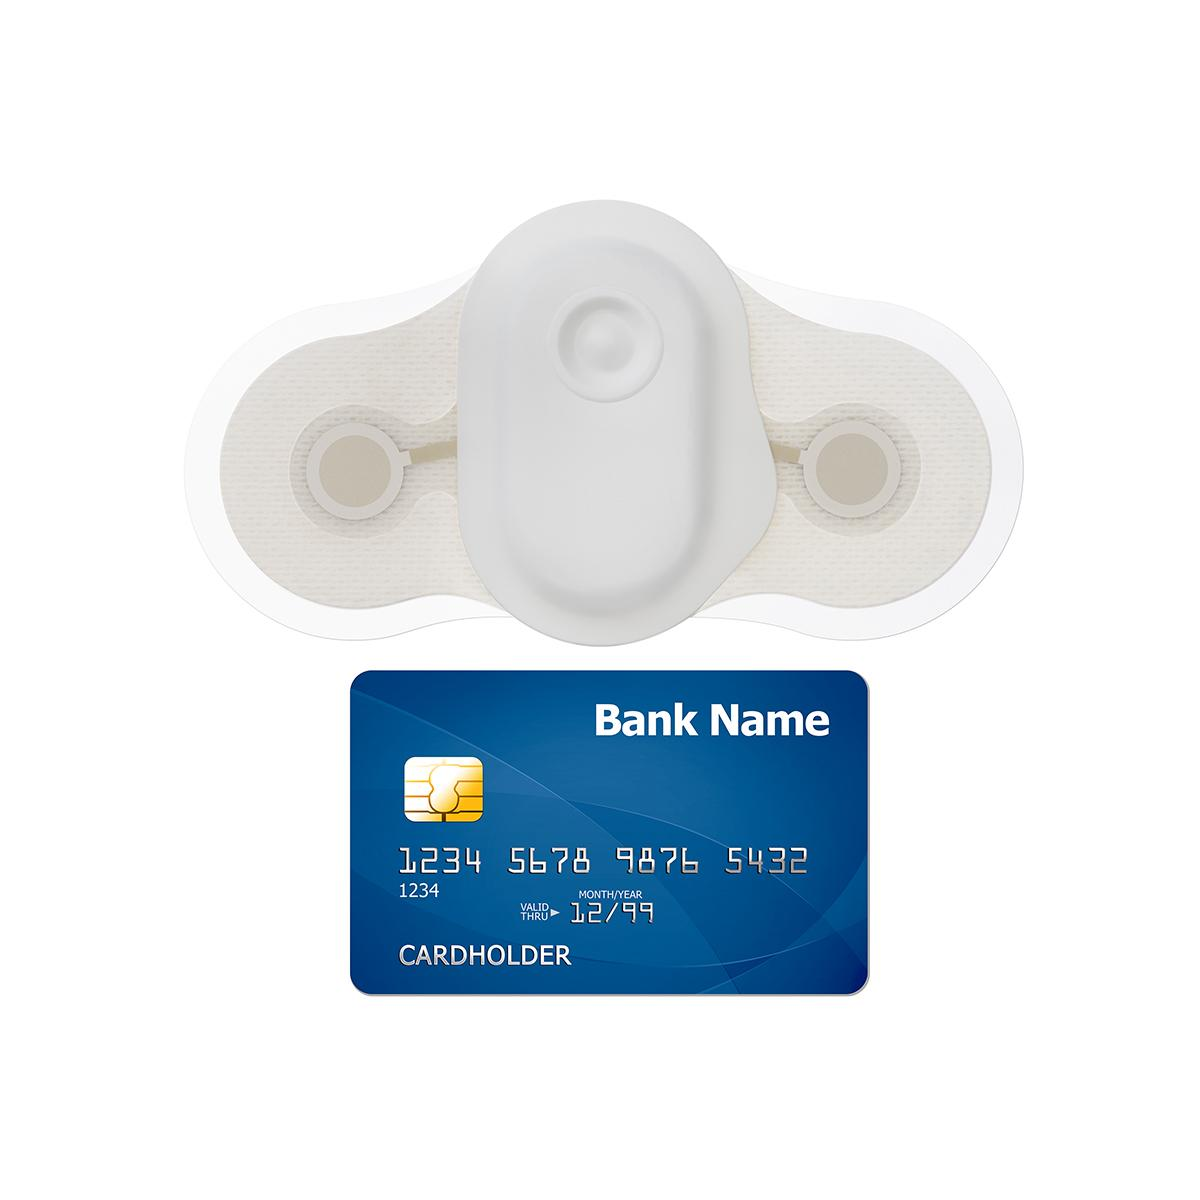 This side-by-side view of the Welch Allyn TAGecg sensor shows that it is comparable in size to a consumer credit card.